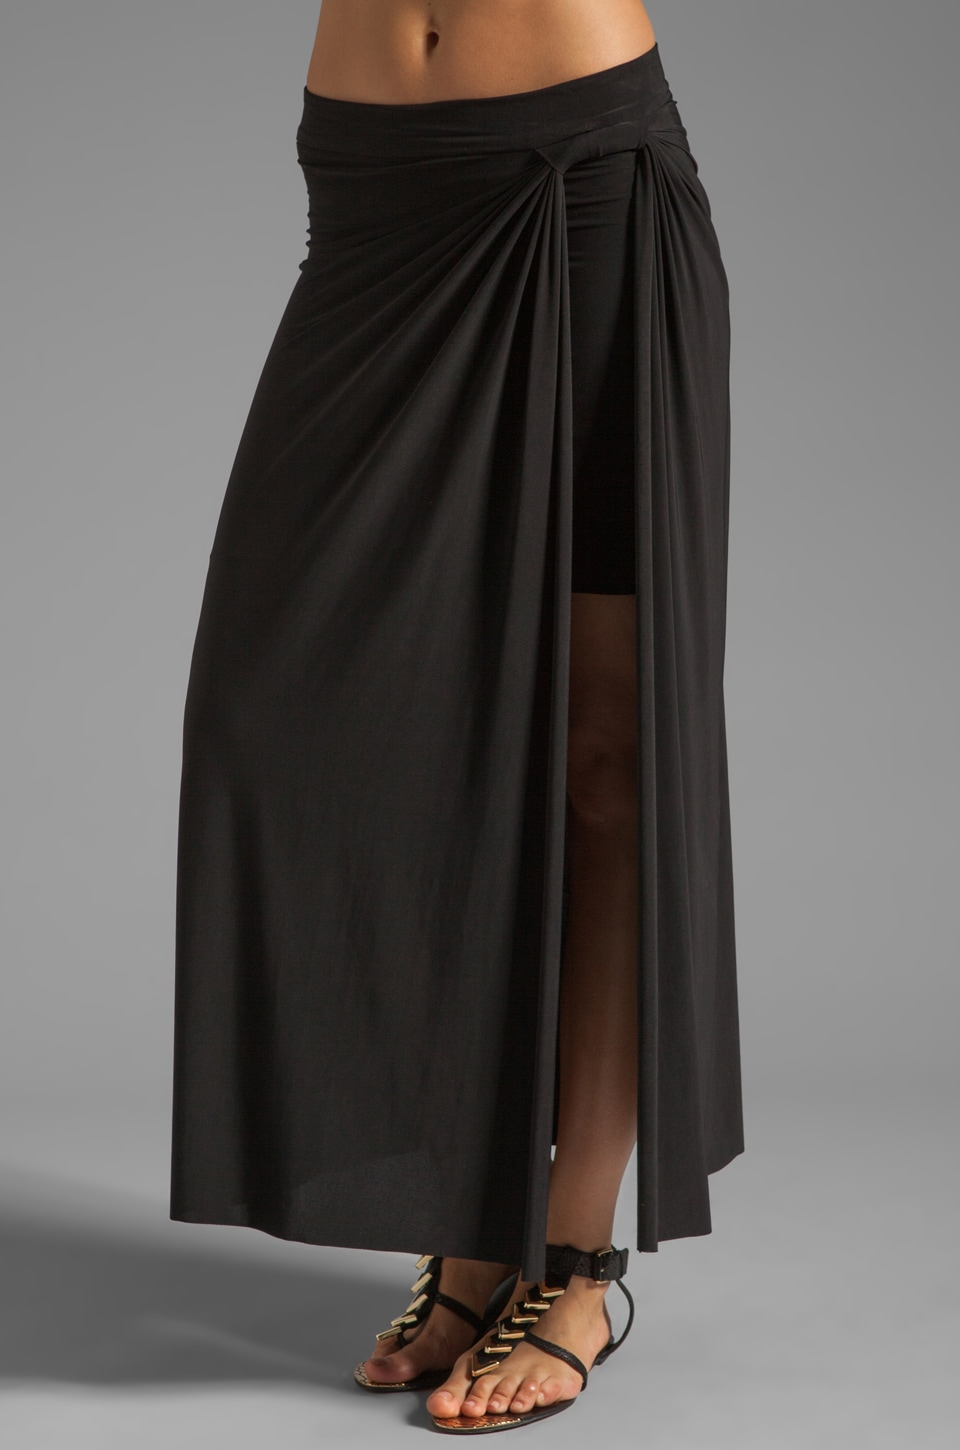 T-Bags LosAngeles Maxi Skirt in Black